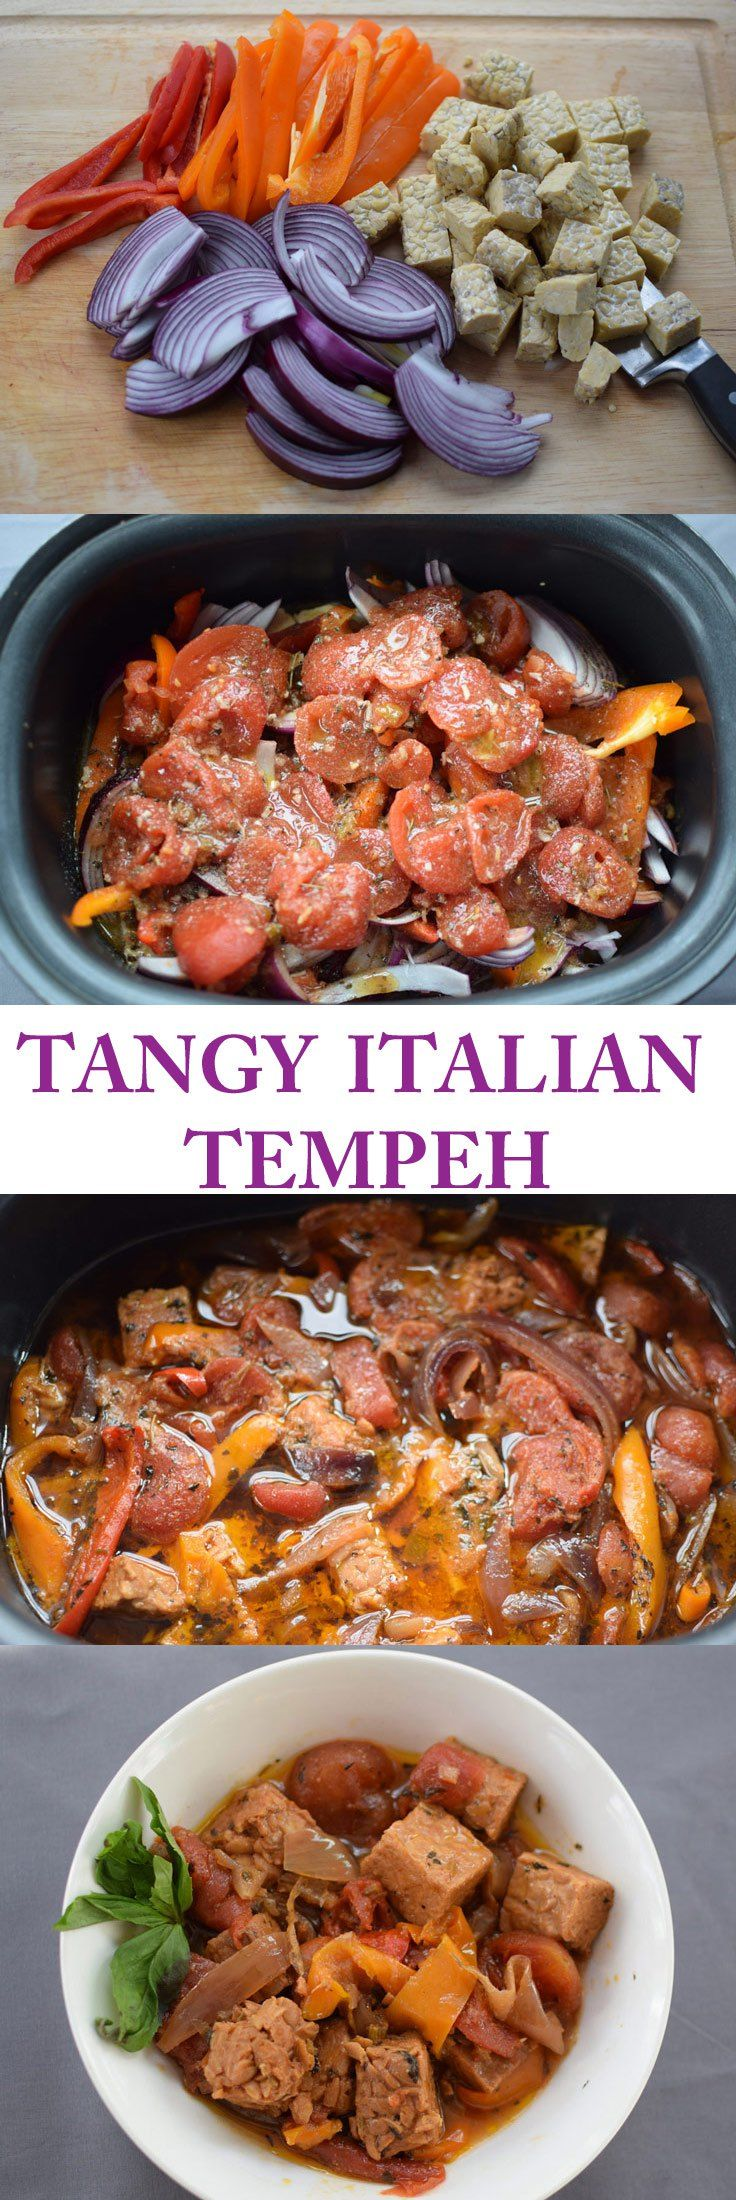 Tangy Italian Slow Cooker Tempeh